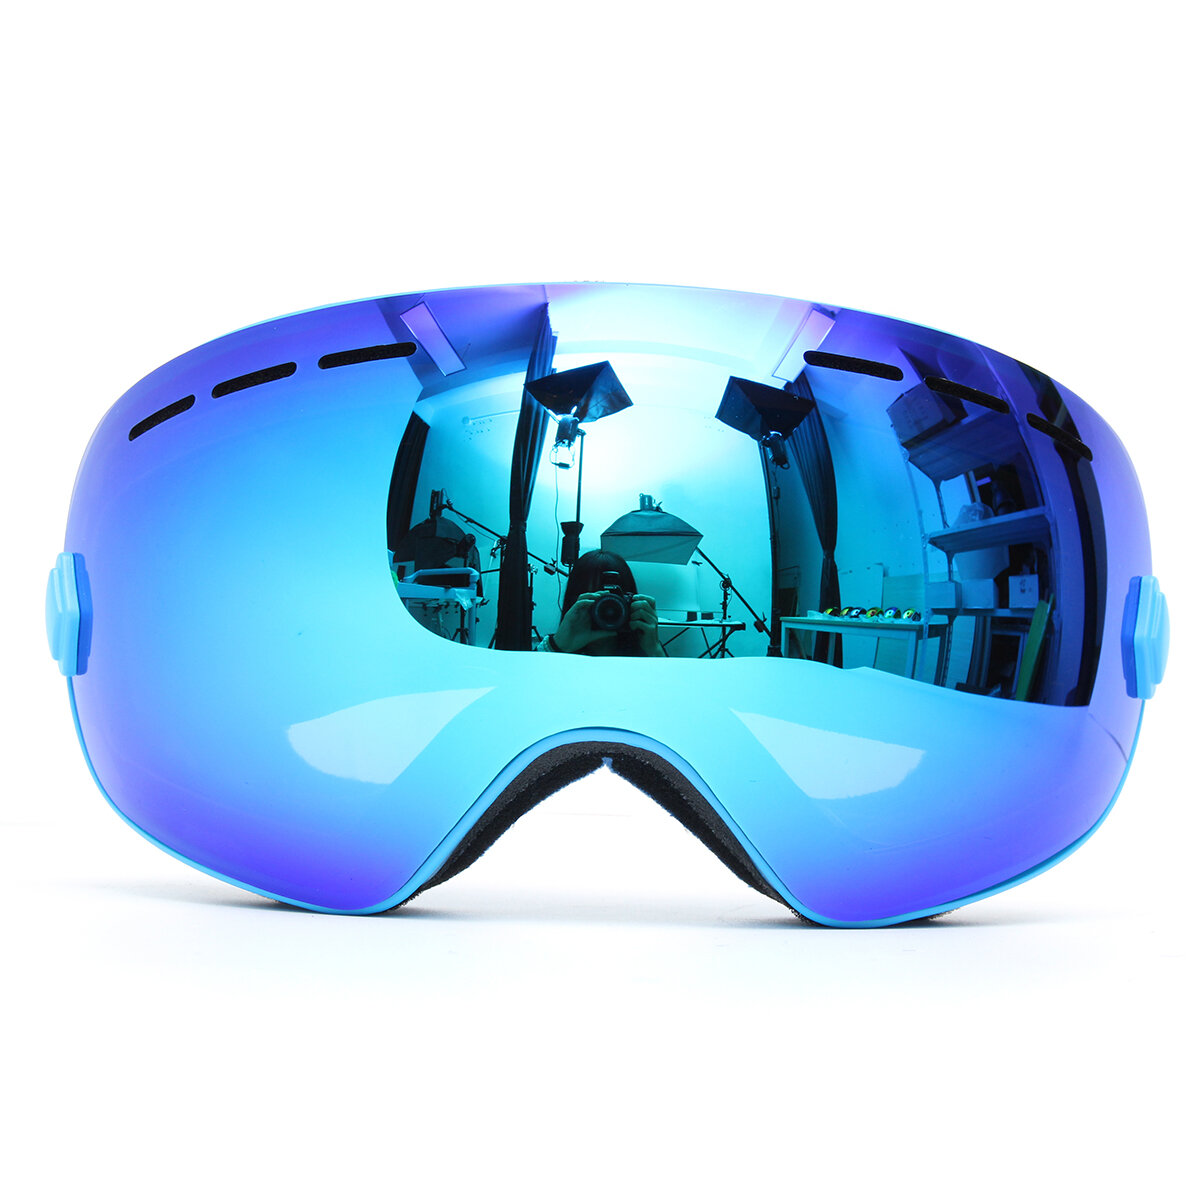 8cead1a461a Professional Skiing Motorcycle Snowboard Ski Goggles Anti Fog UV Double  Lens Blue COD